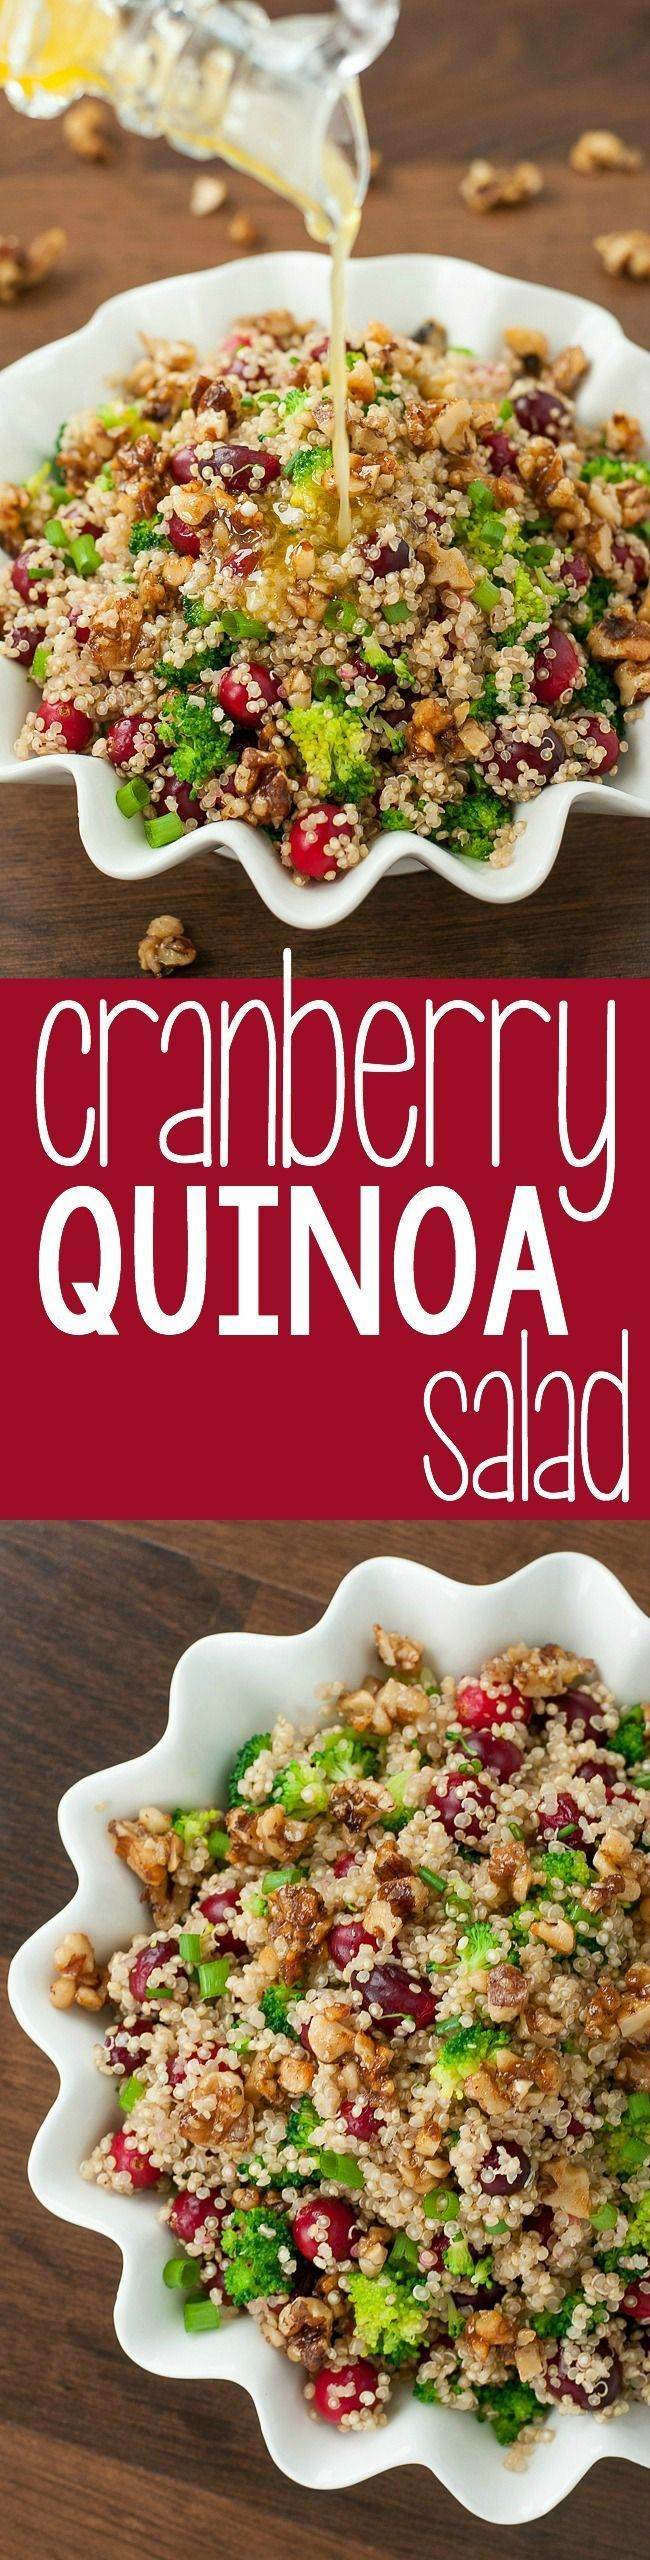 Cranberry Quinoa Salad with Candied Walnuts Cranberry Quinoa Salad with Candied Walnuts :: we're in love with this healthy gluten-free salad!